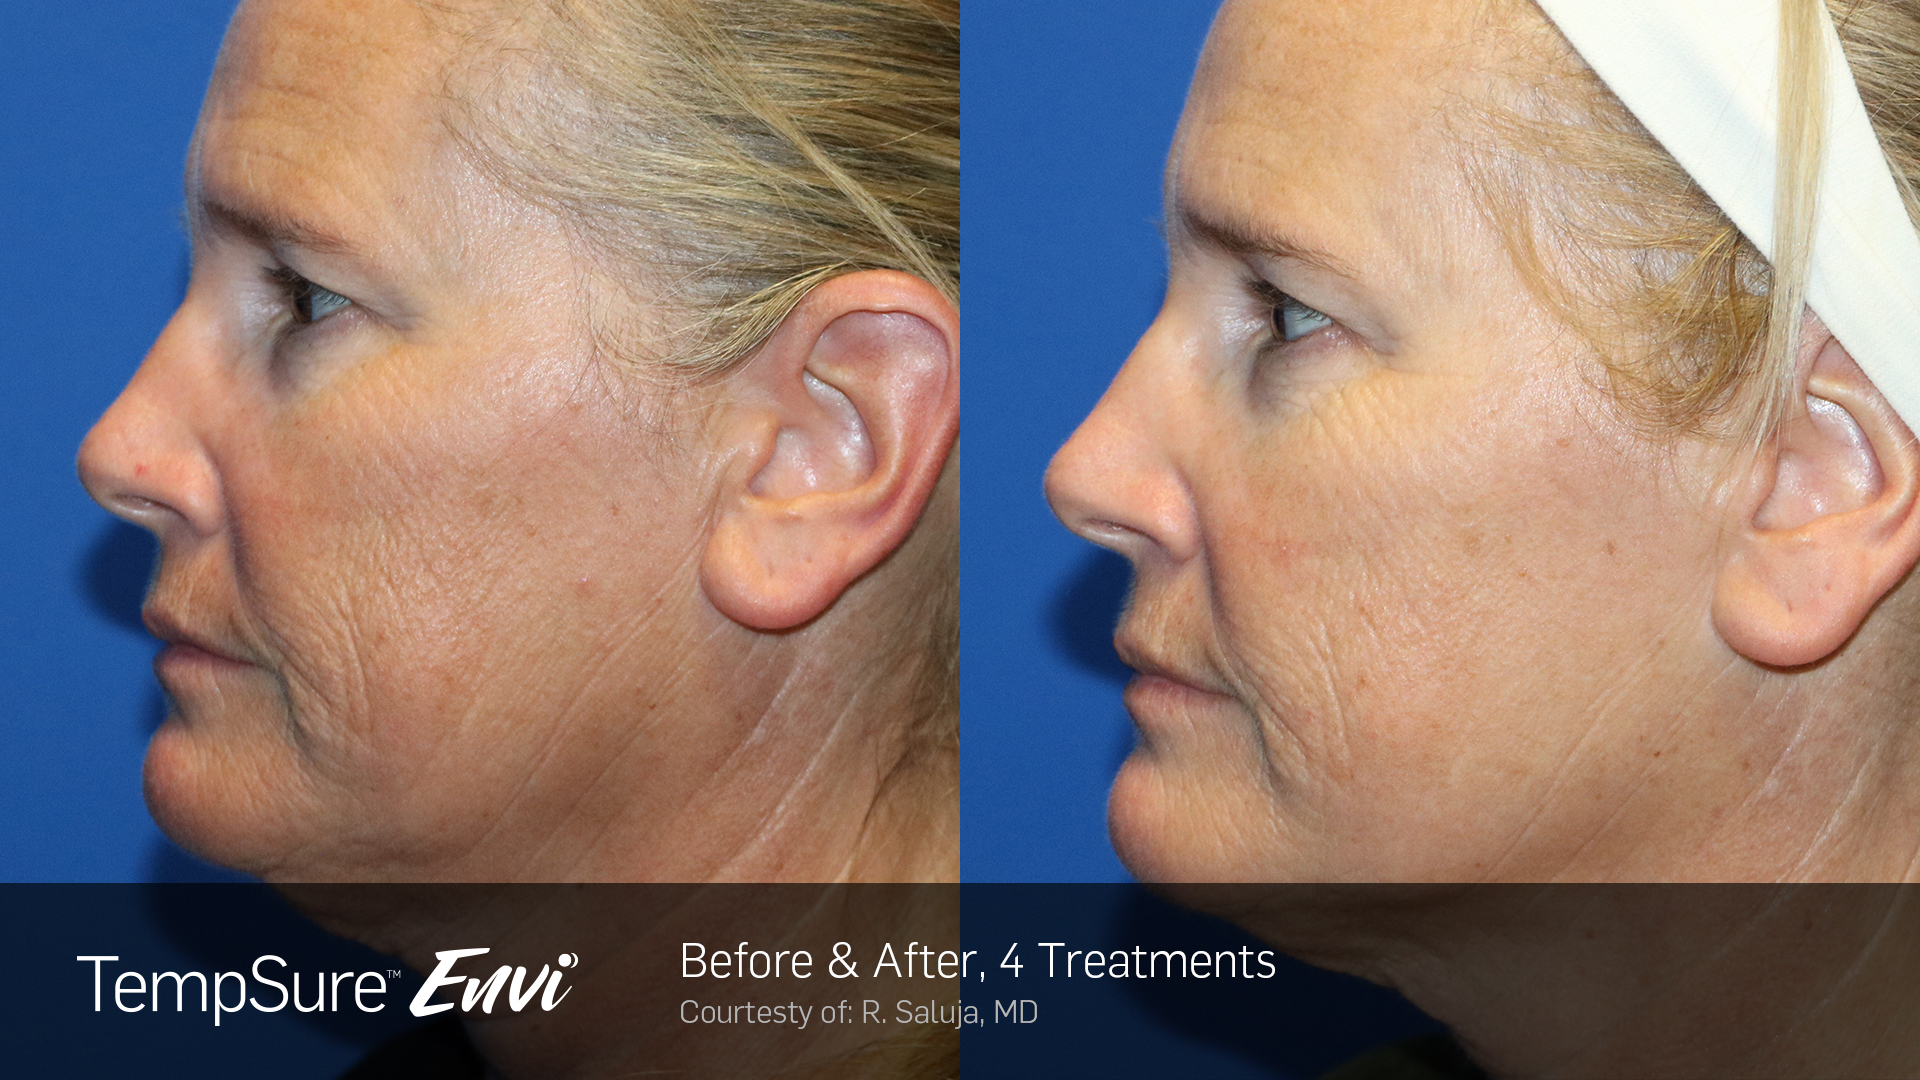 TempSure wrinkle reduction and towel tightening